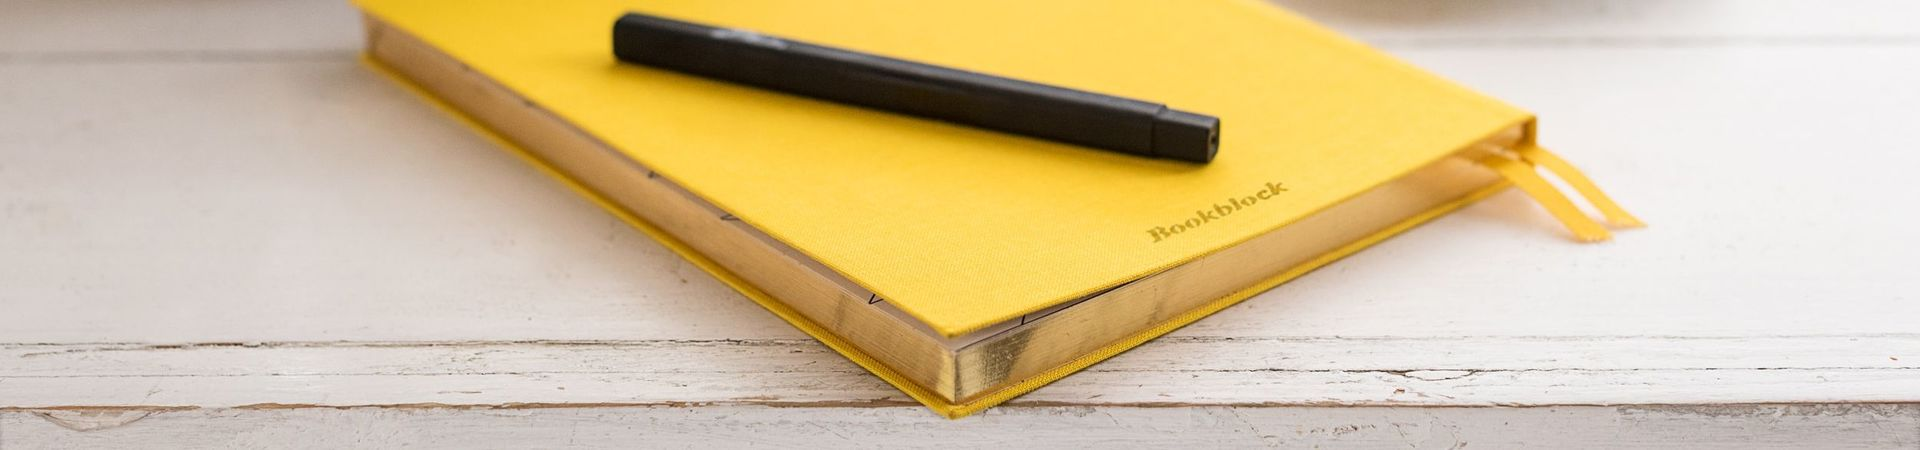 Yellow notebook and black pen lying on a wooden table